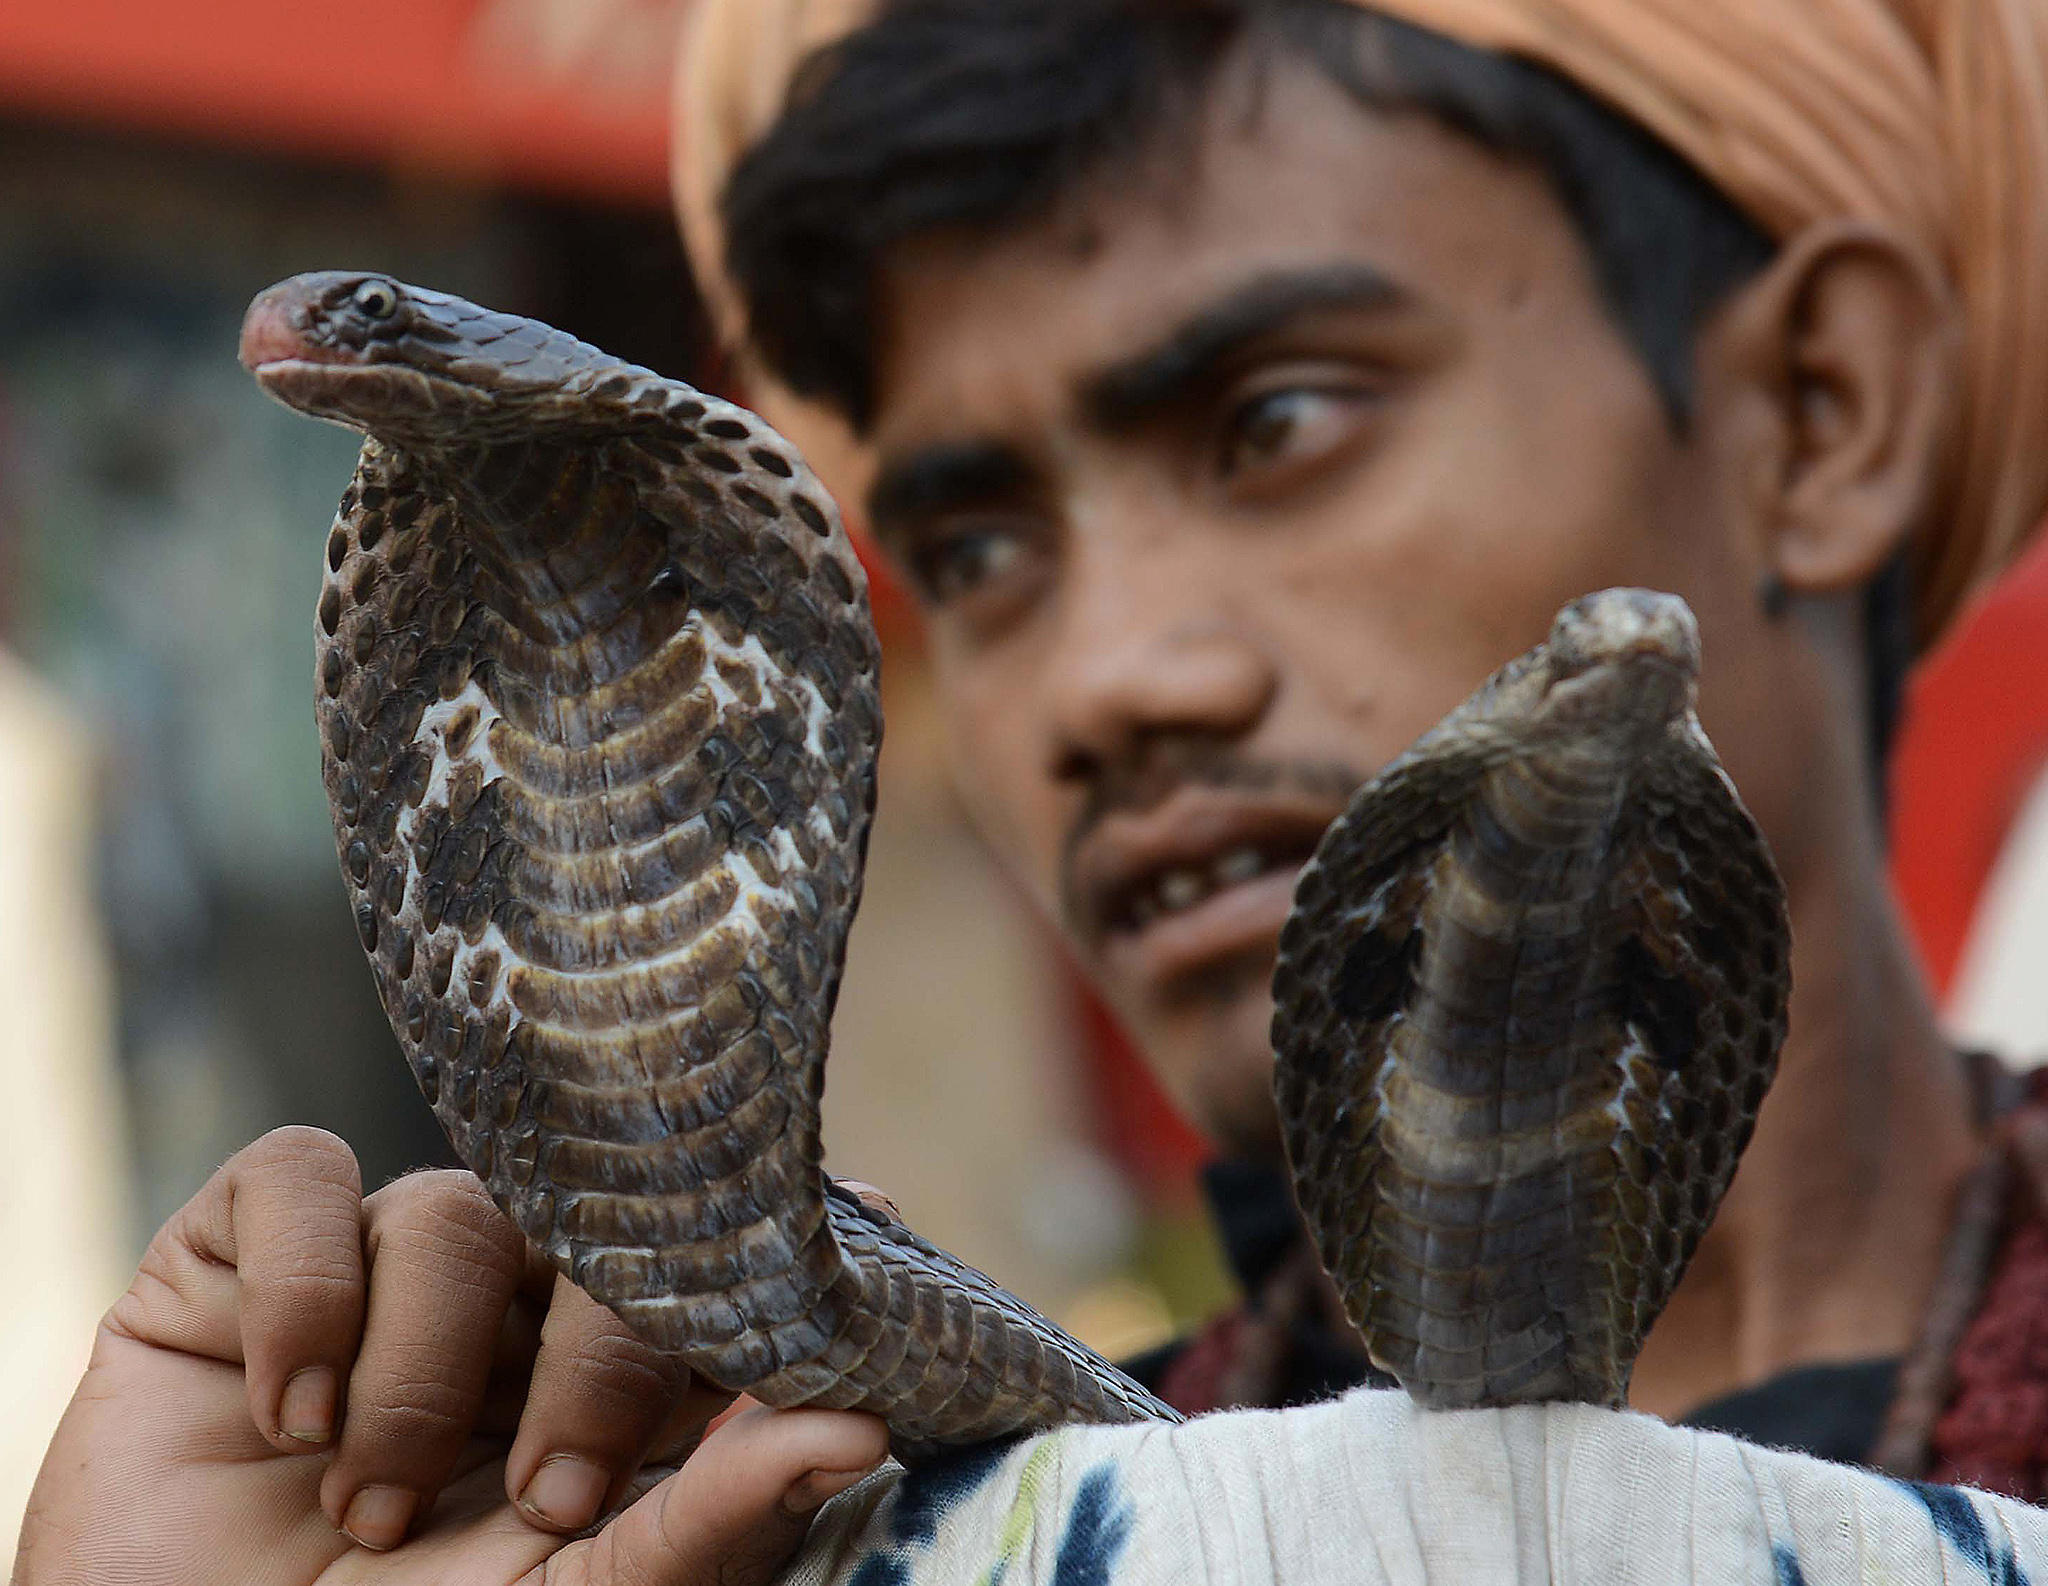 An Indian snake charmer poses with his cobras as he waits for alms from devotees outside a temple in Amritsar, ahead of the Hindu festival of Diwali.